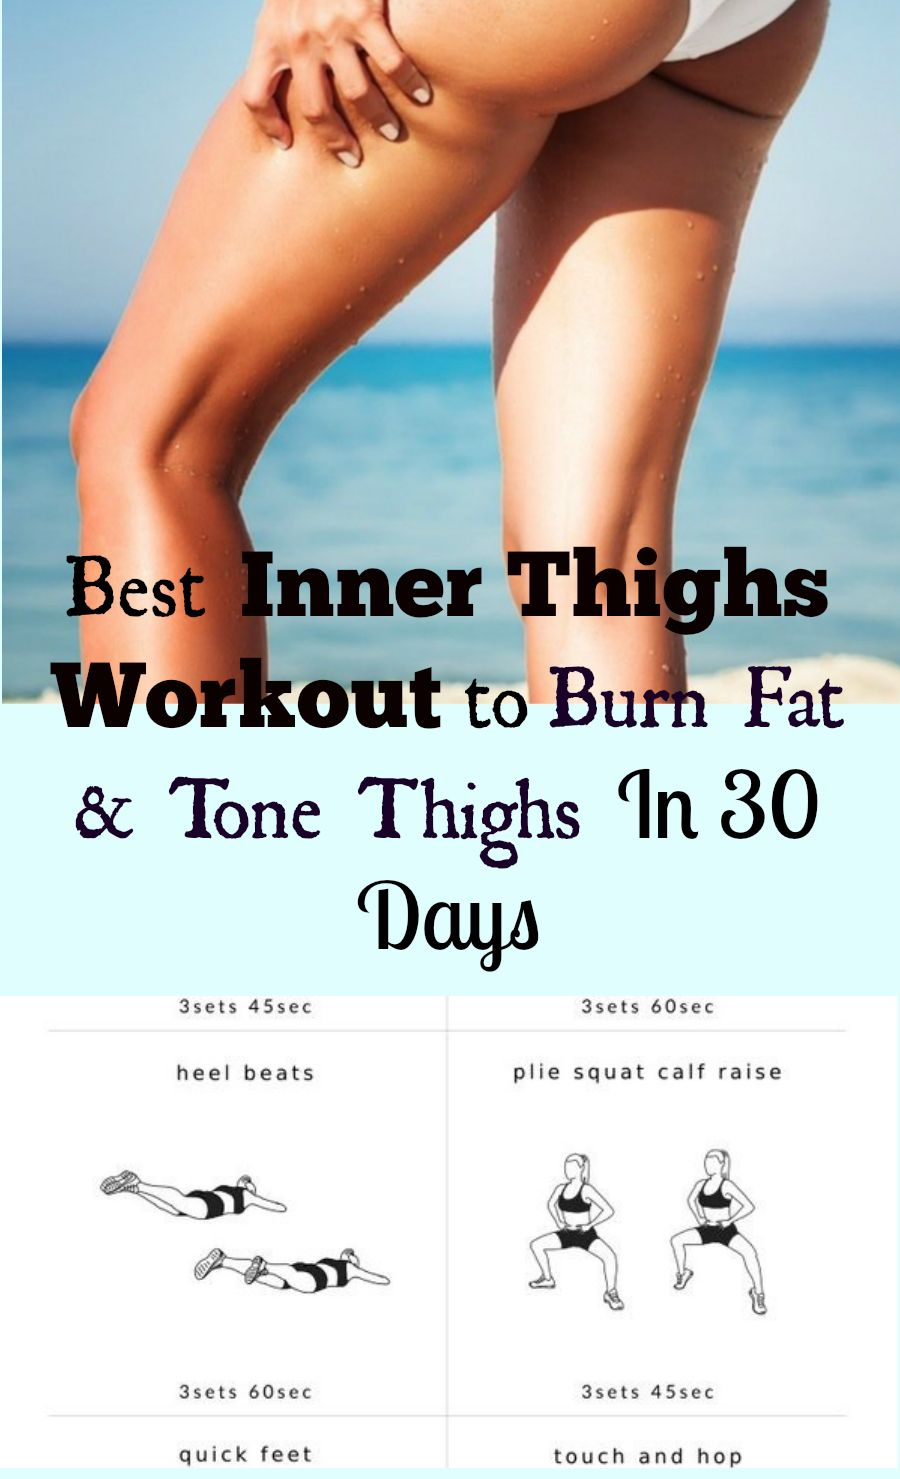 how to lose inner thigh fat in 3 days